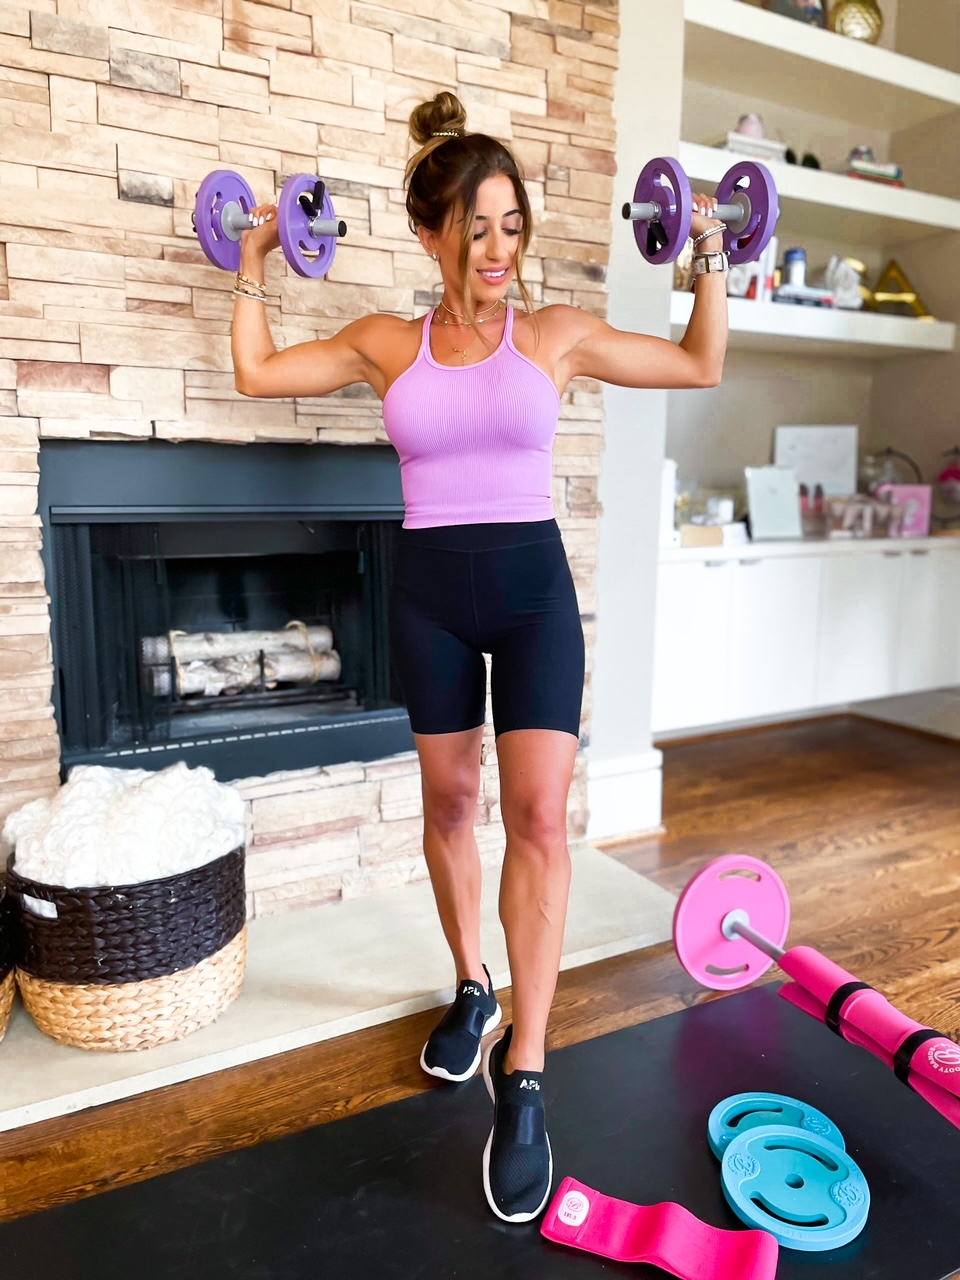 lifestyle and fashion blogger samantha belbel shares a full body at home workout using Booty Bands resistance bands, dumbbells, and barbell | adoubledose.com